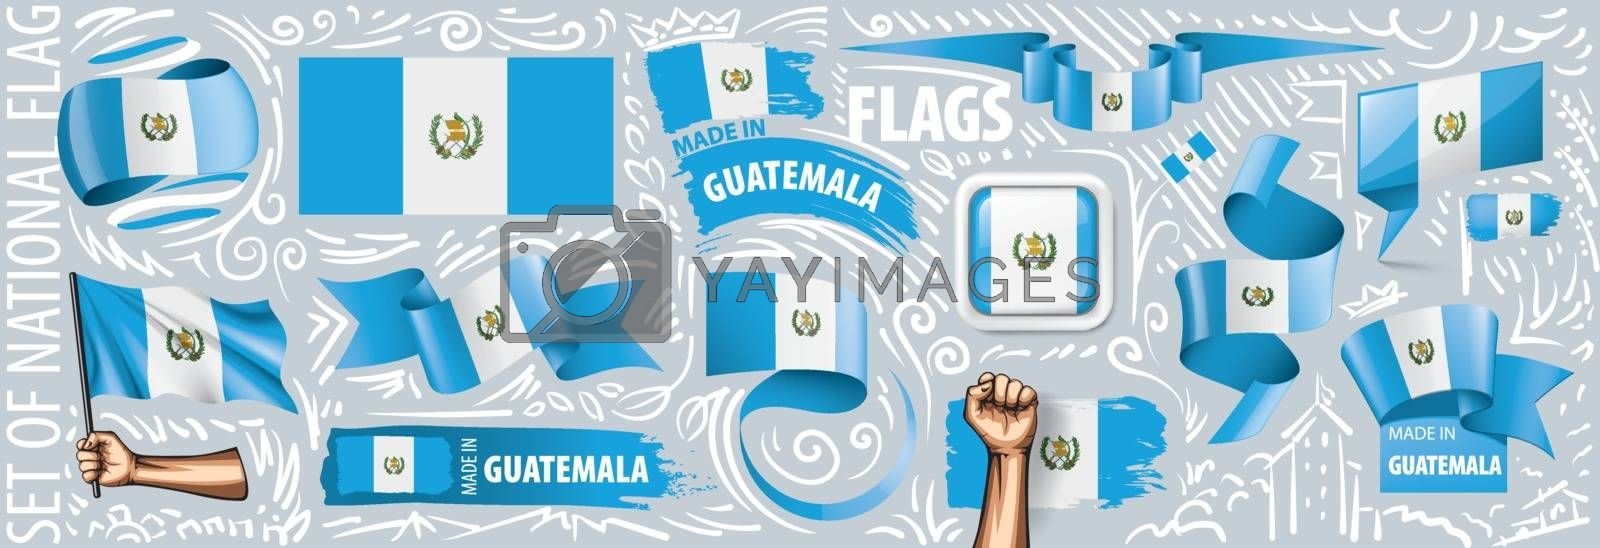 Vector set of the national flag of Guatemala in various creative designs.